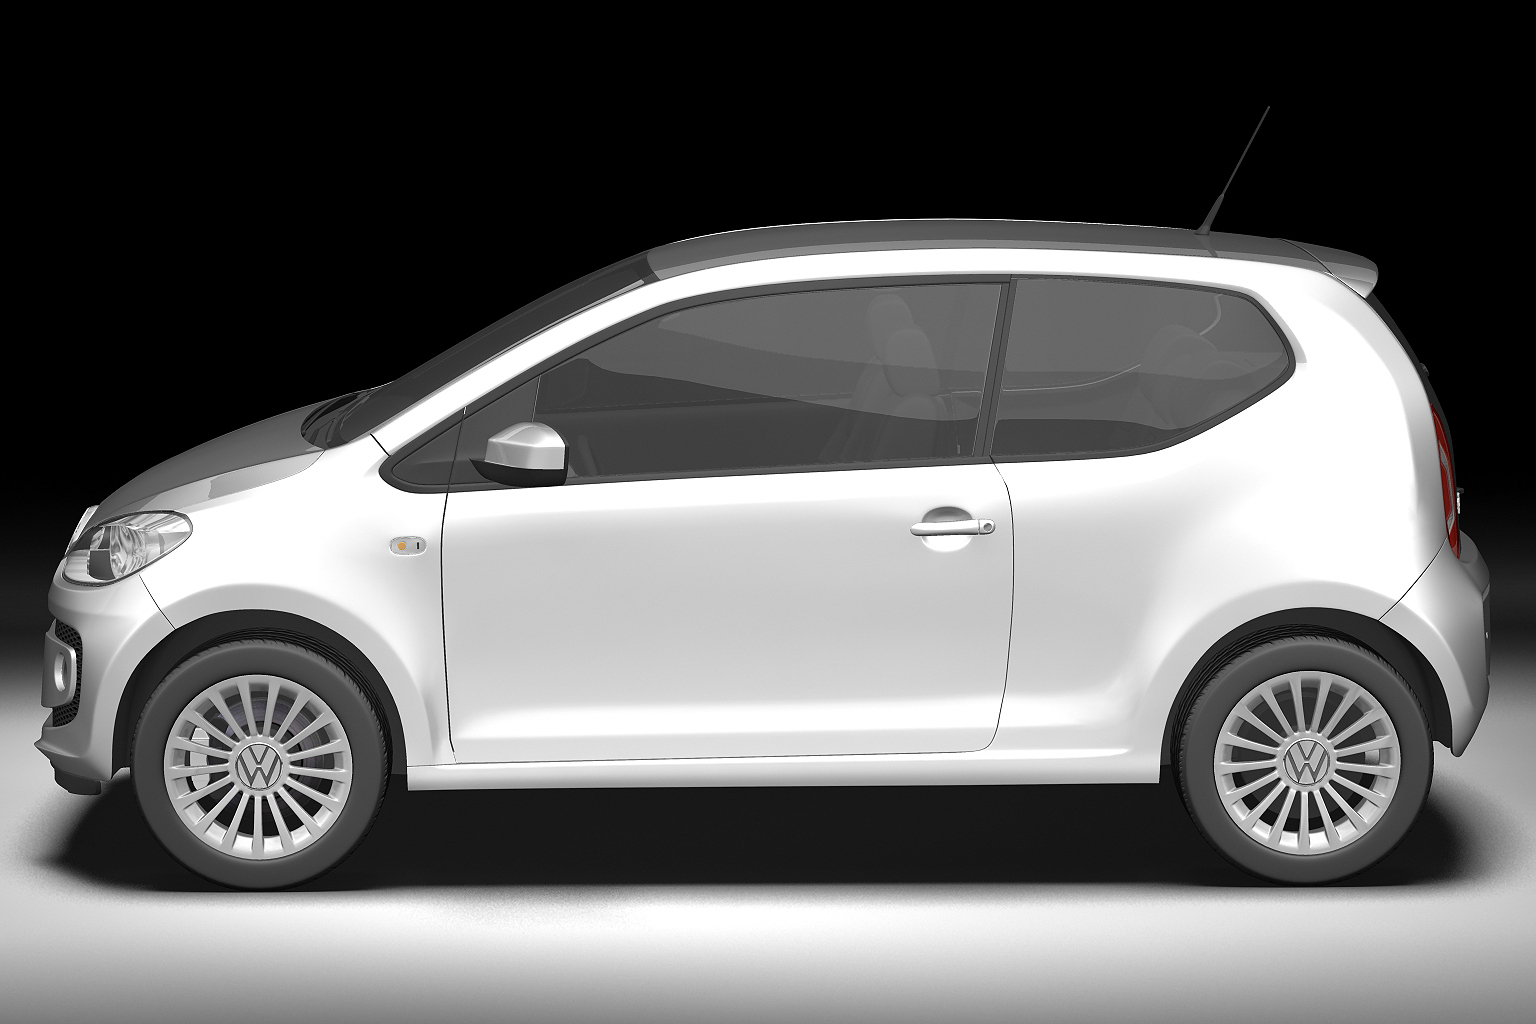 2013 volkswagen up 3d model 3ds max fbx c4d lwo hrc xsi obj 136205